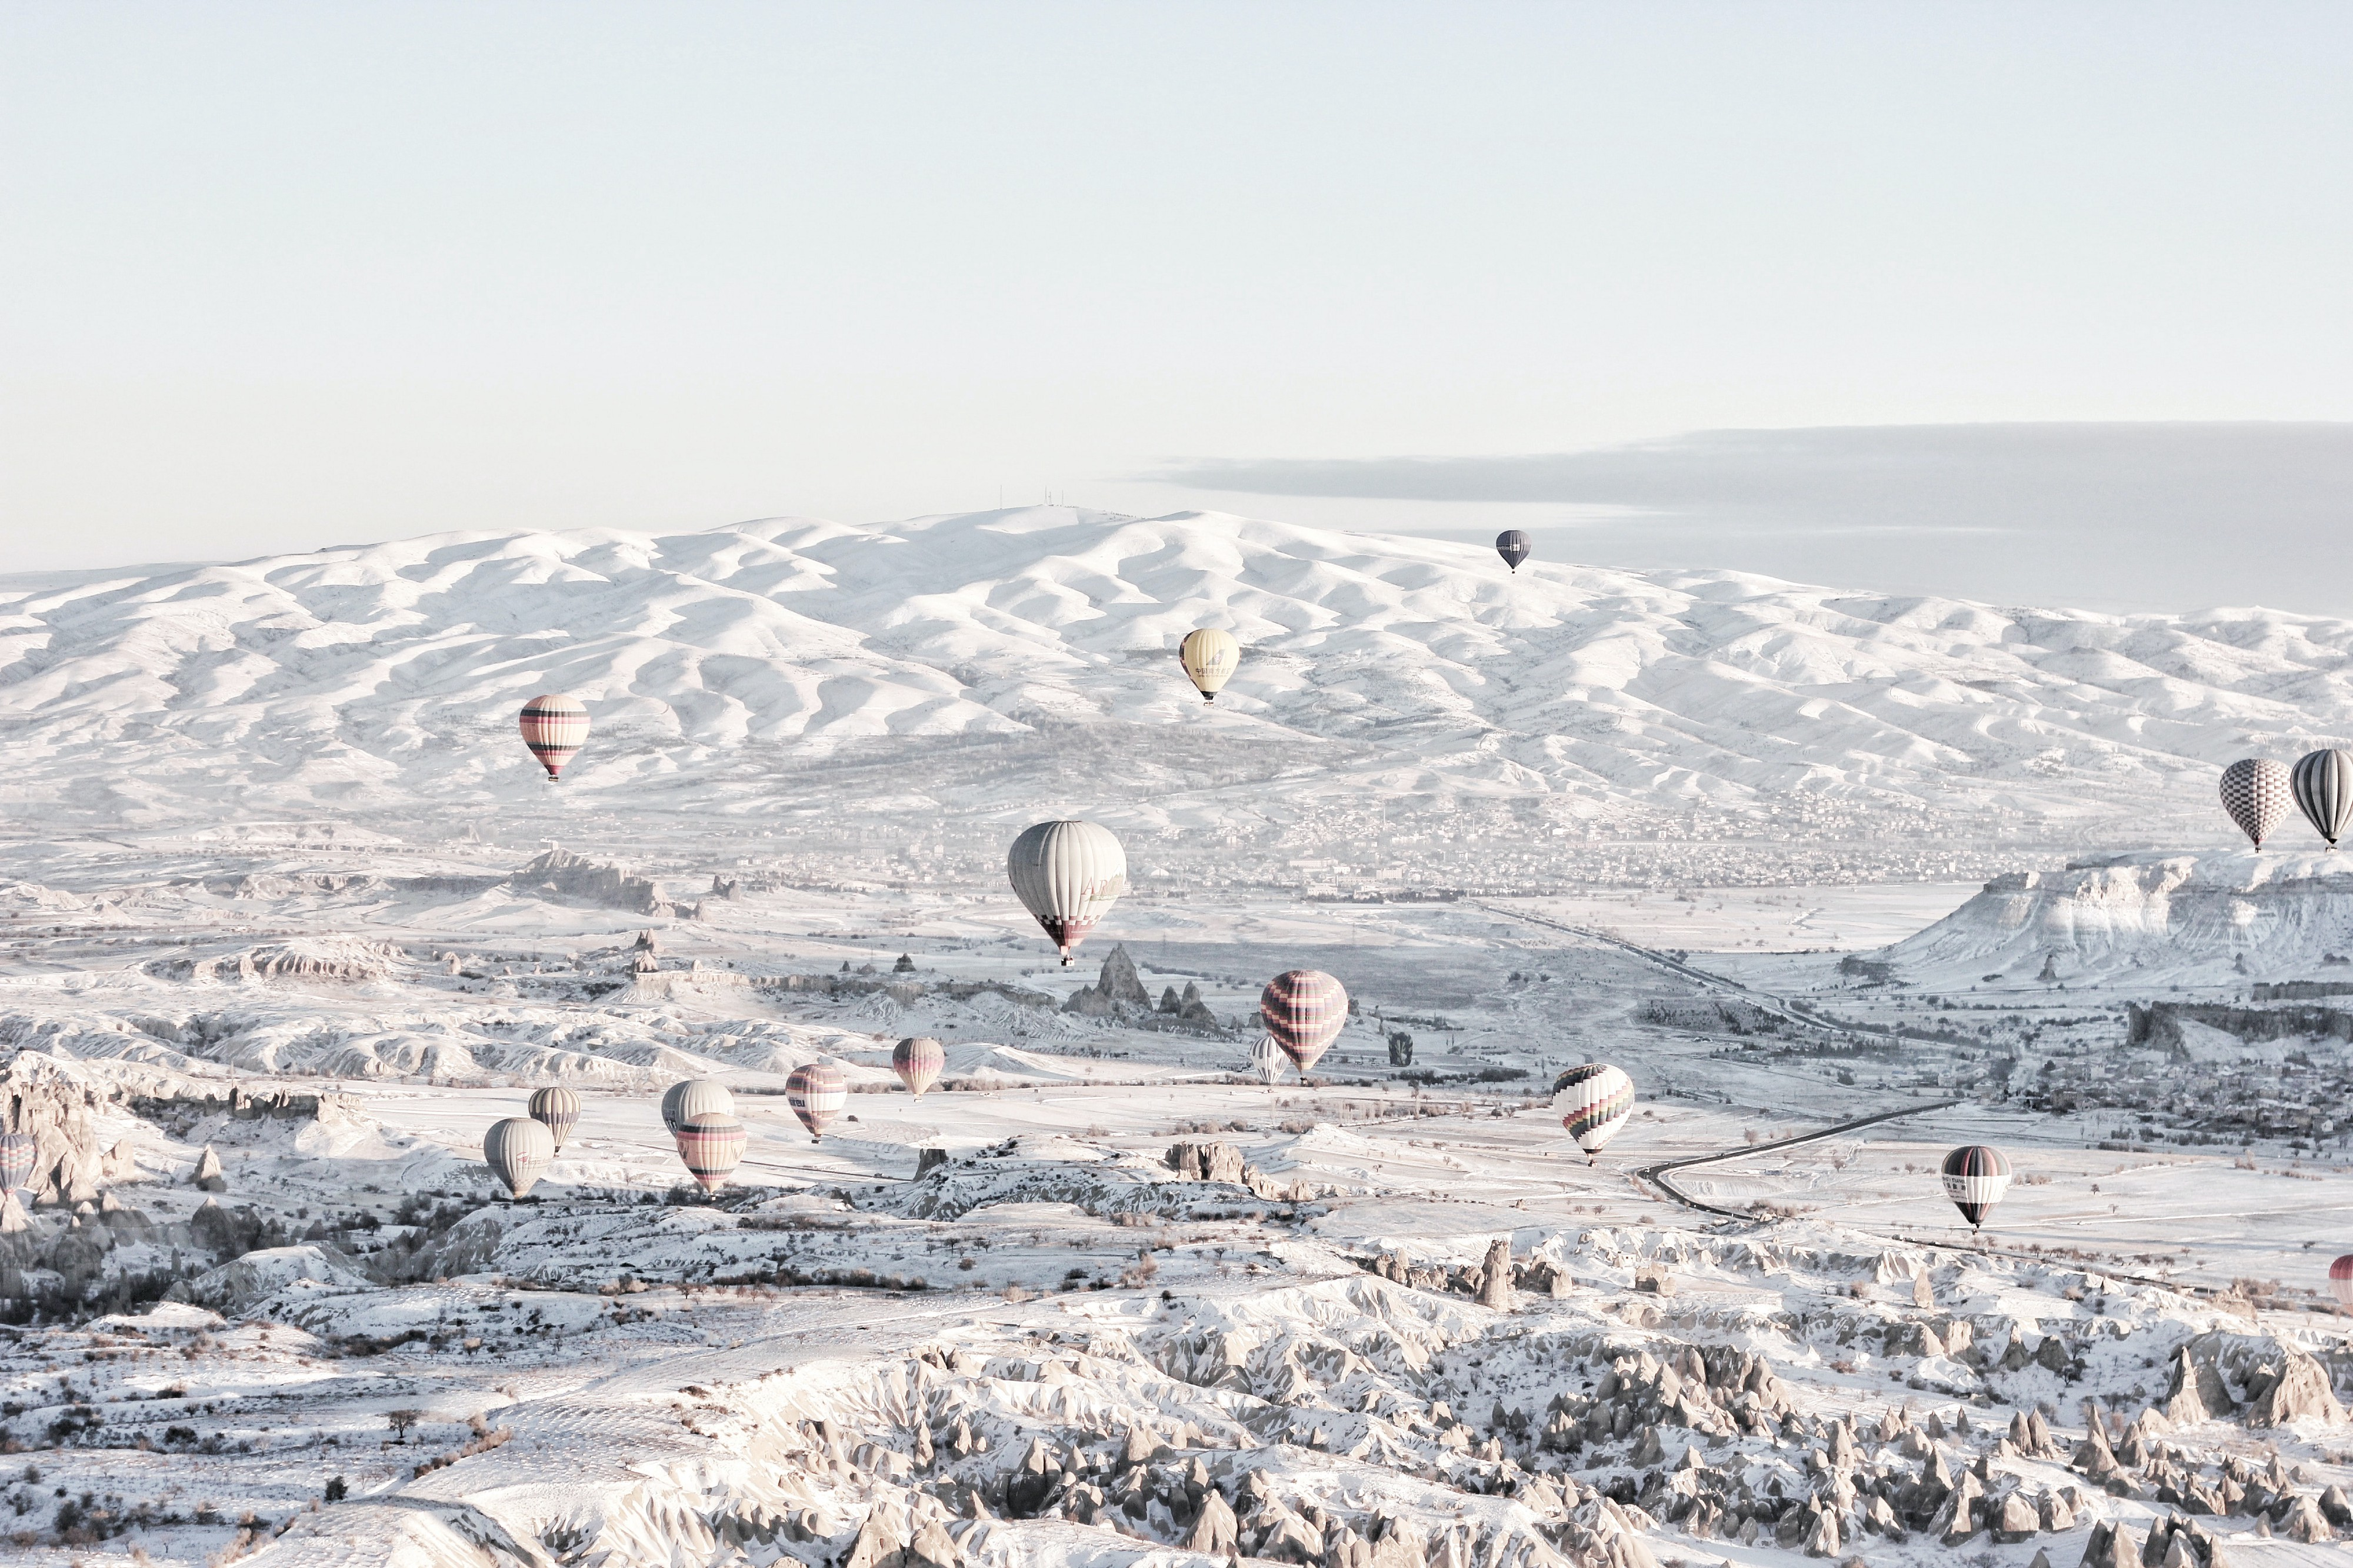 Hot air balloons in a snowy landscape